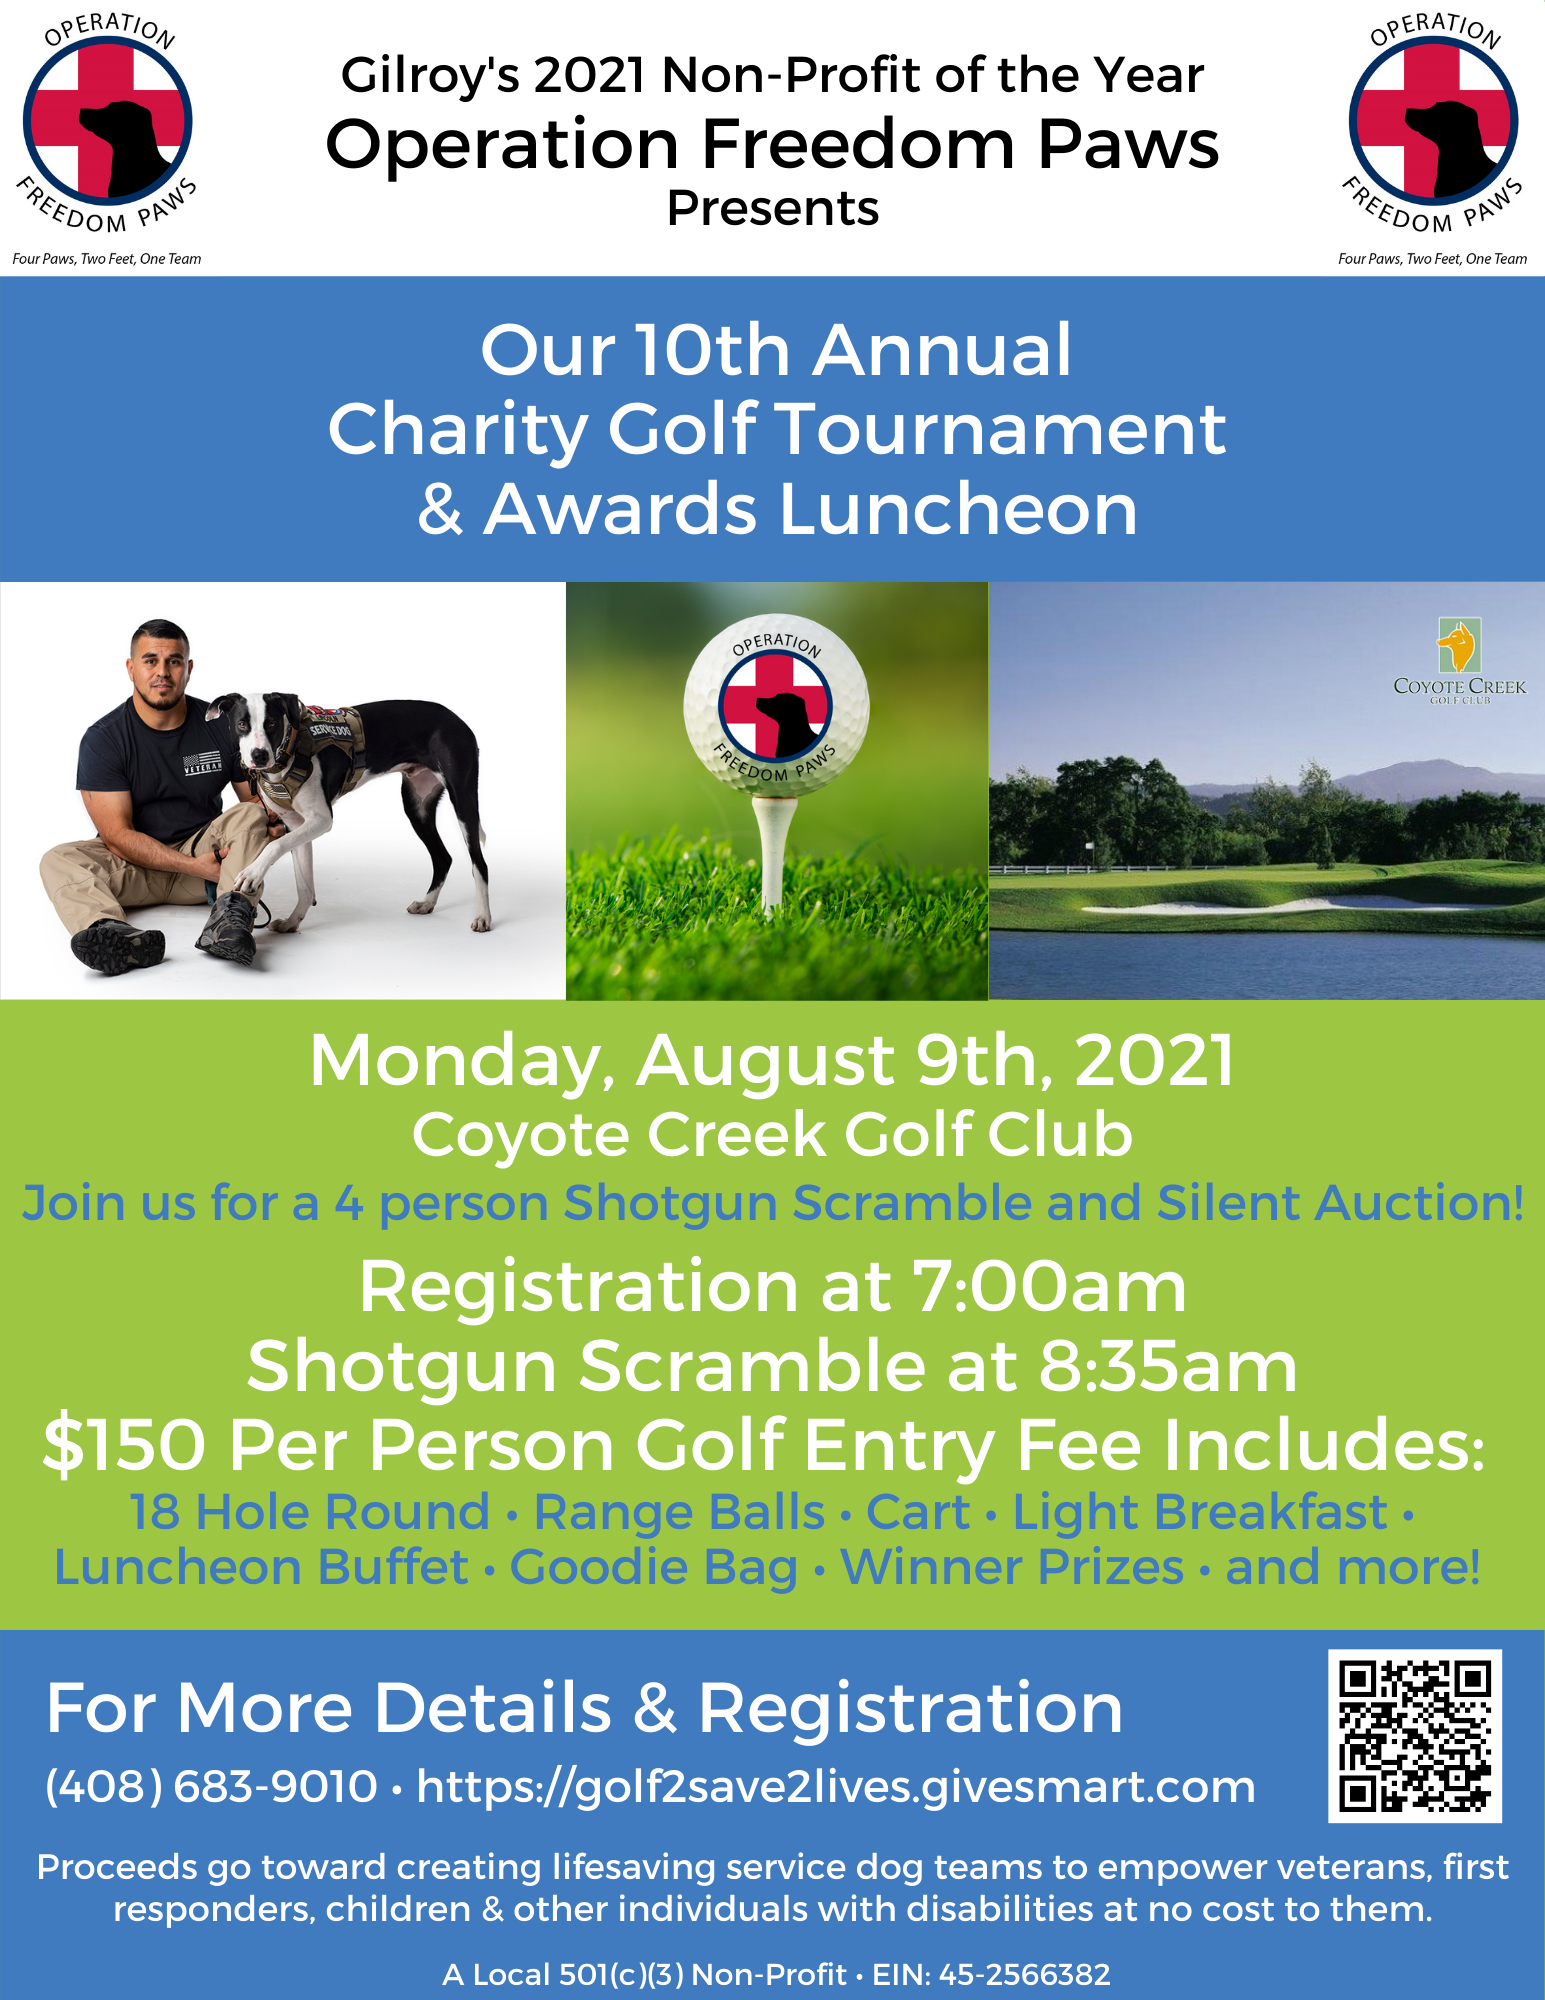 OFP 10th Annual Charity Golf Tournament & Awards Luncheon